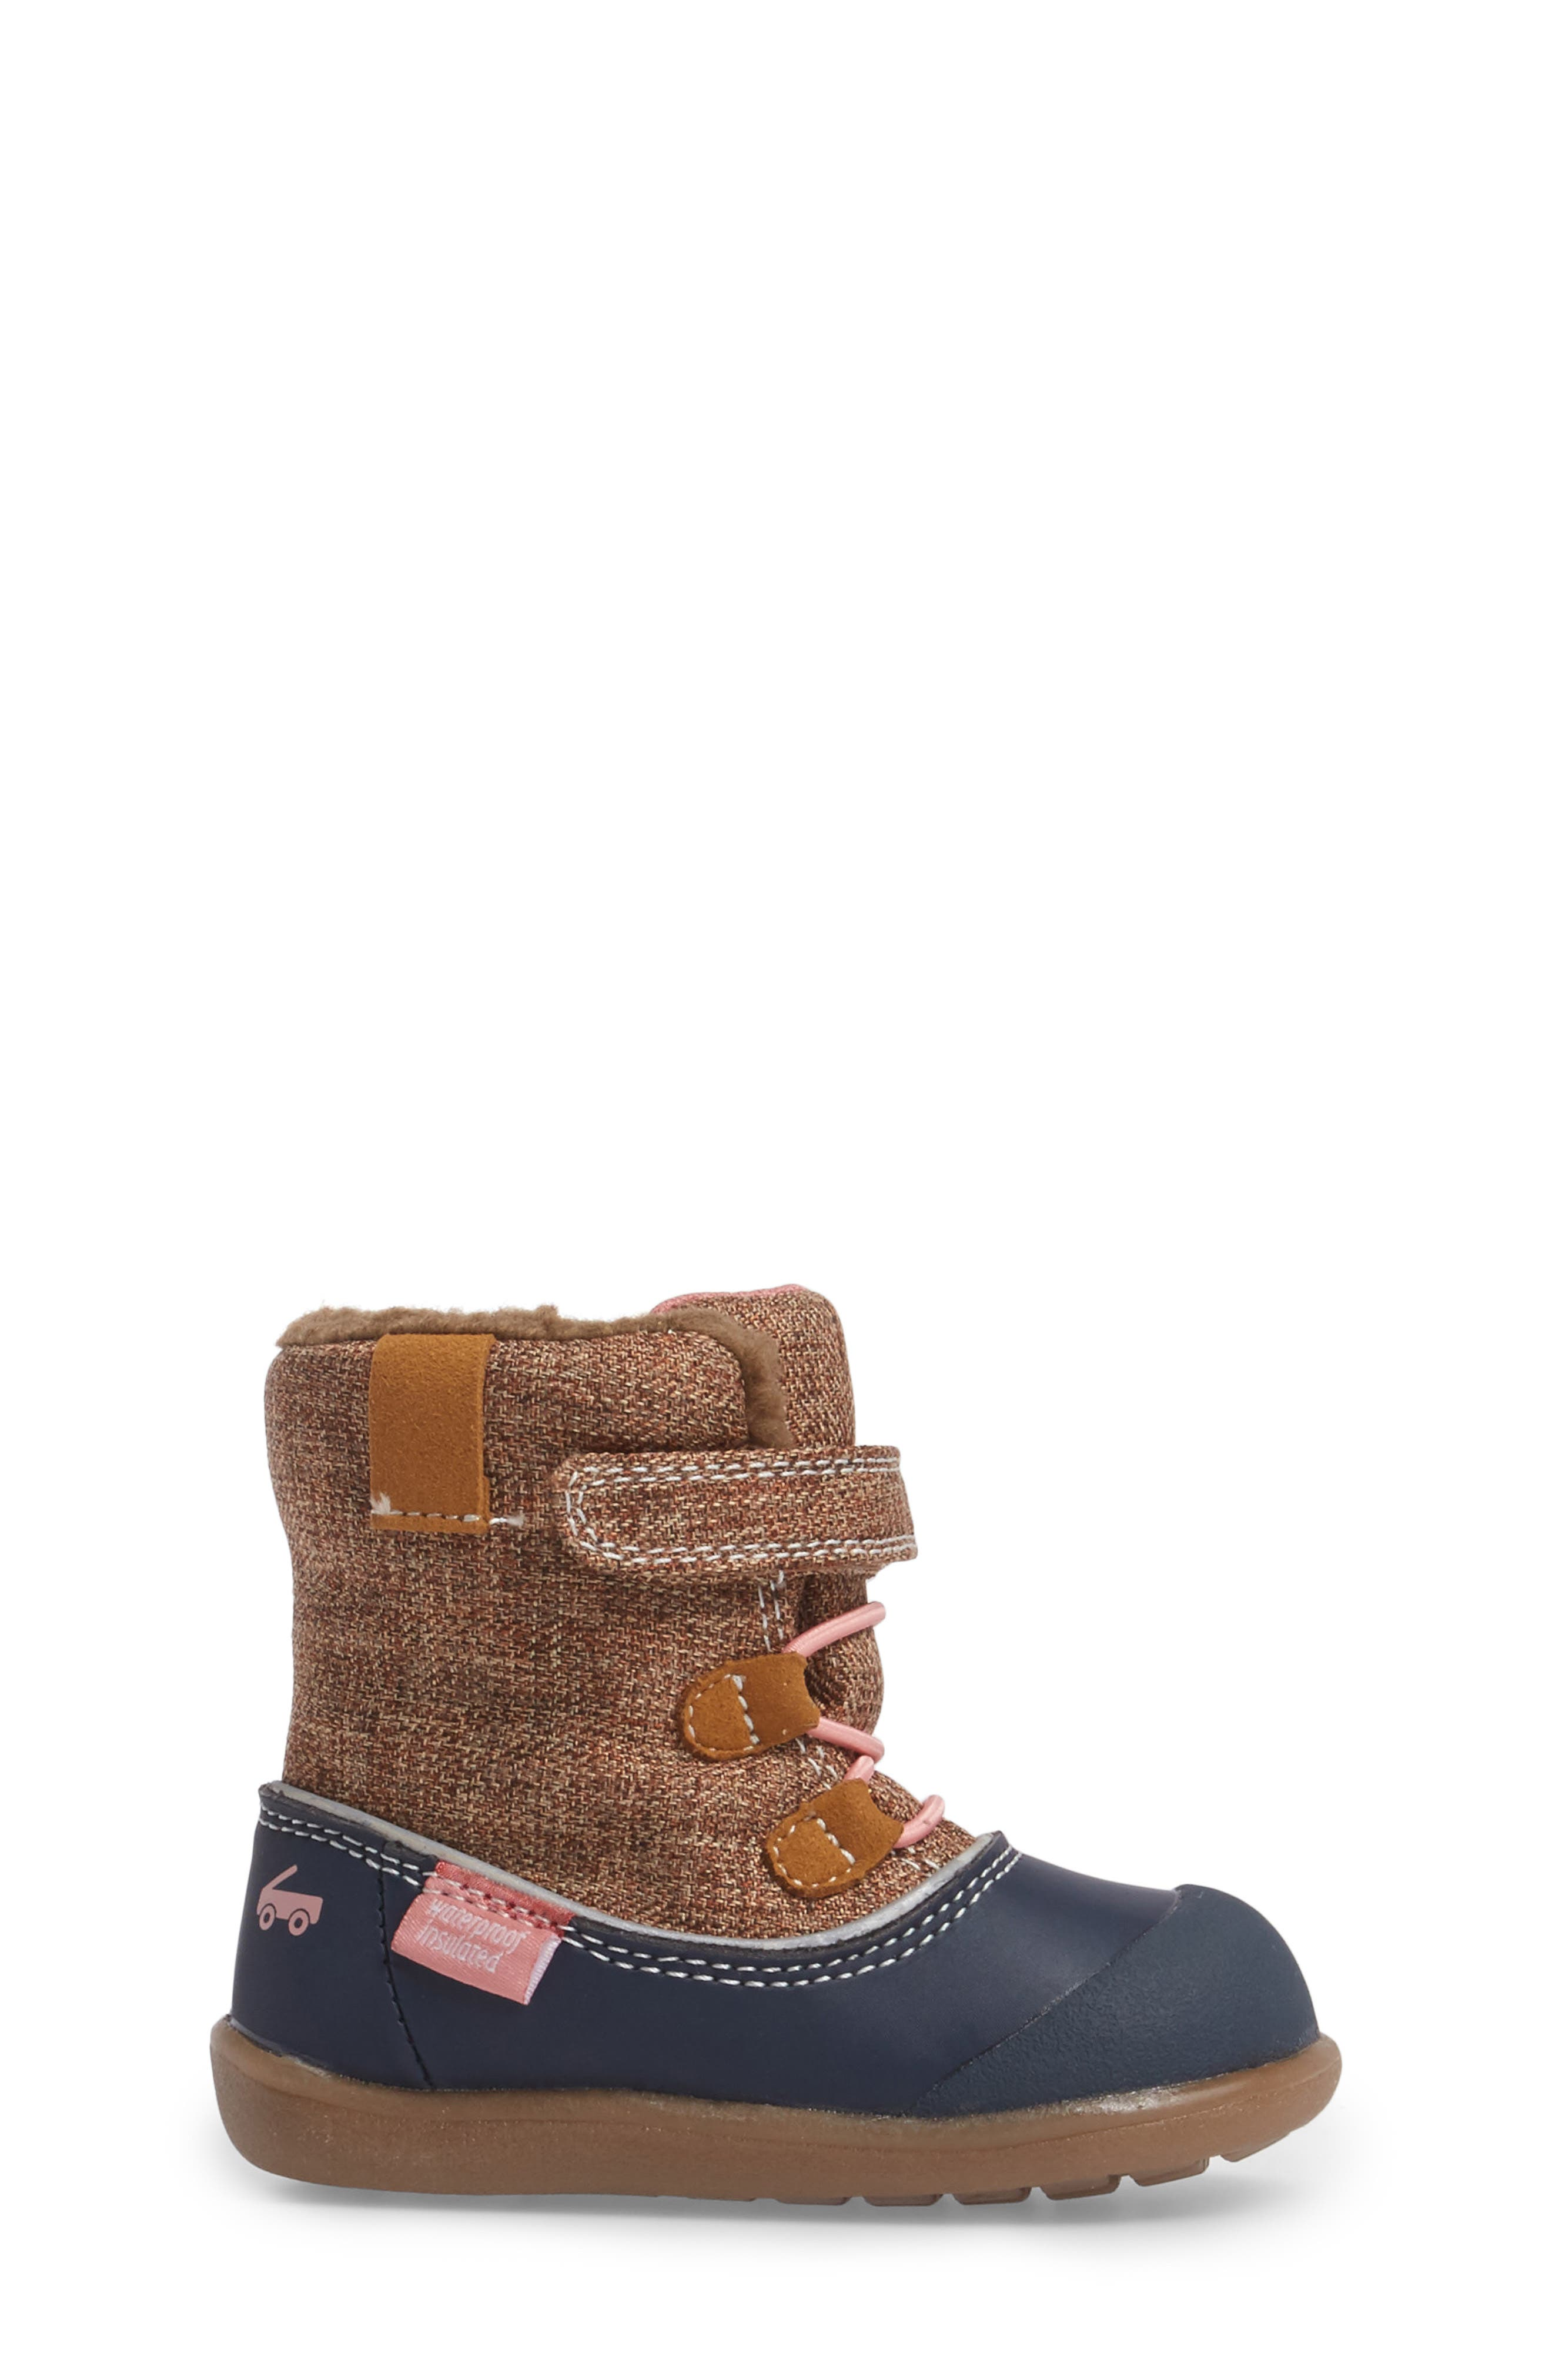 'Abby' Waterproof Boot,                             Alternate thumbnail 3, color,                             Brown